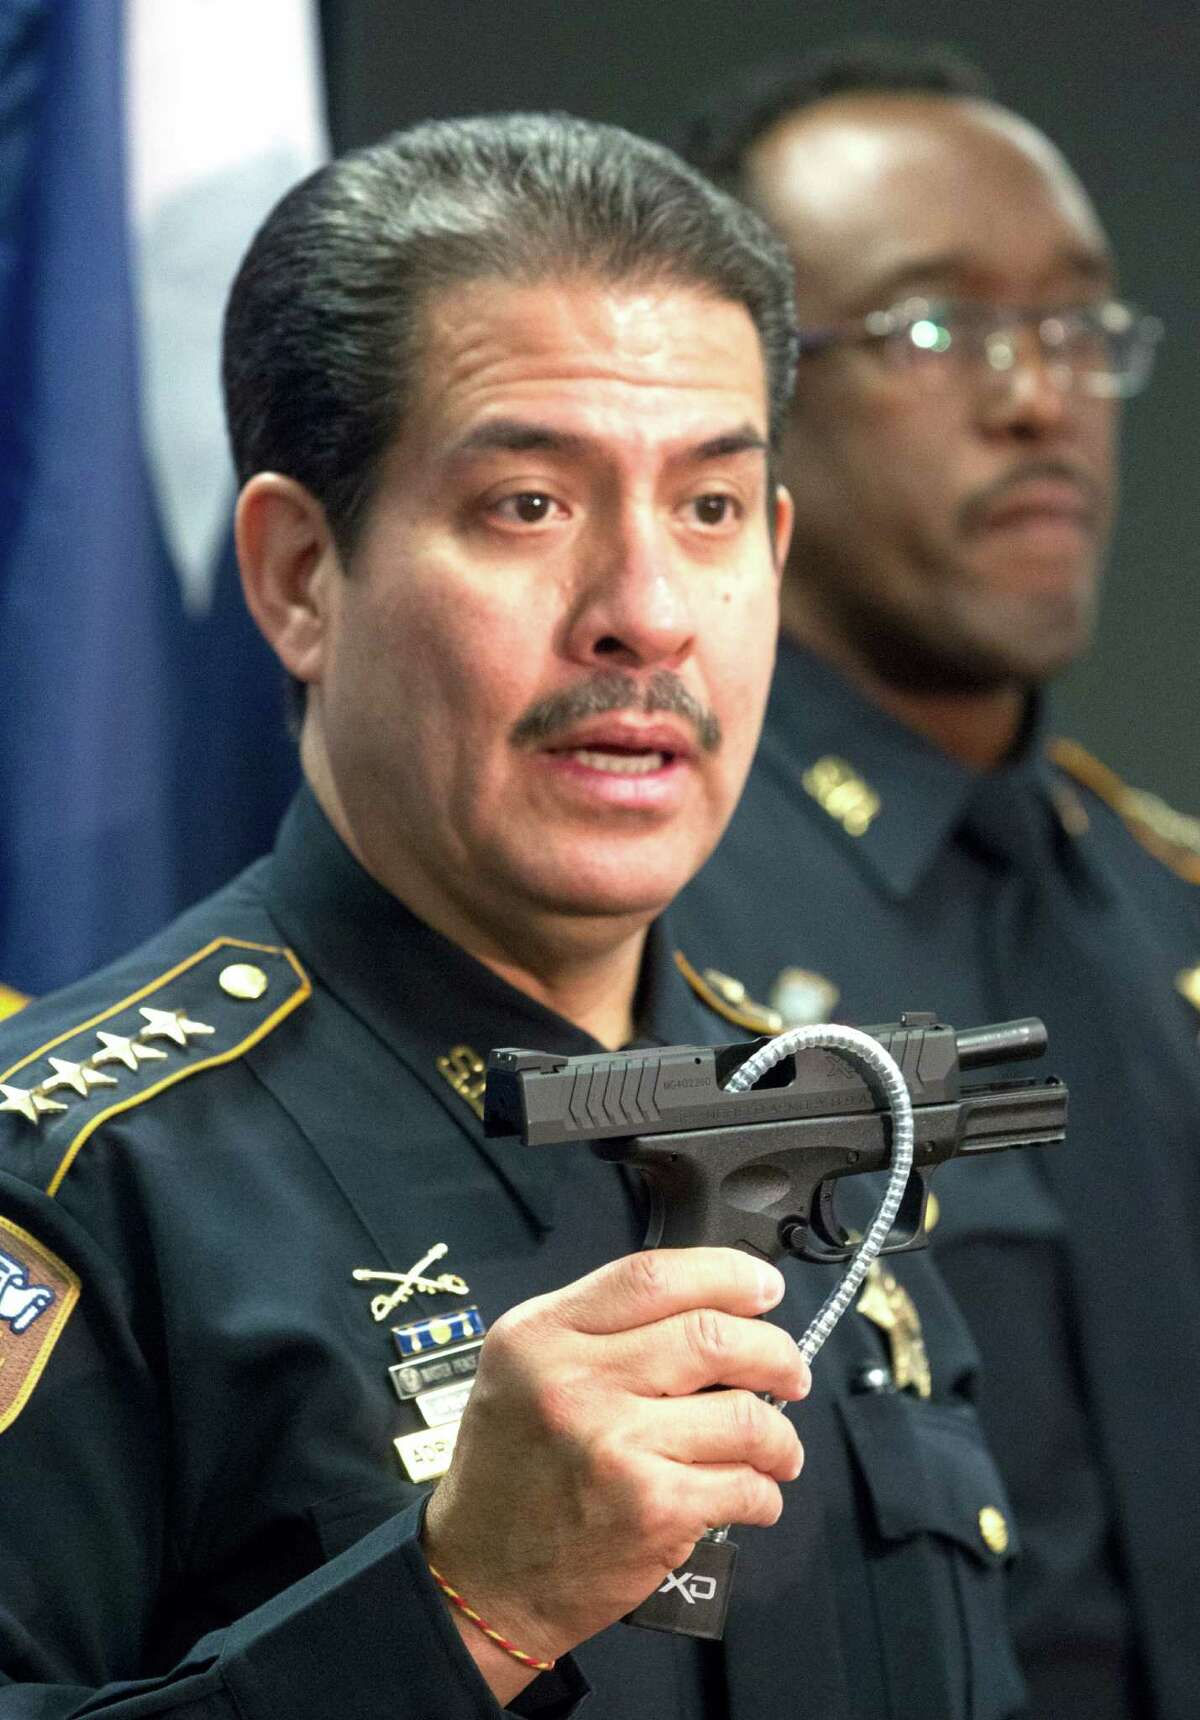 Sheriff Adrian Garcia says parents can receive gun locks from the Sheriff's Office free of charge in an effort to protect children from firearms.